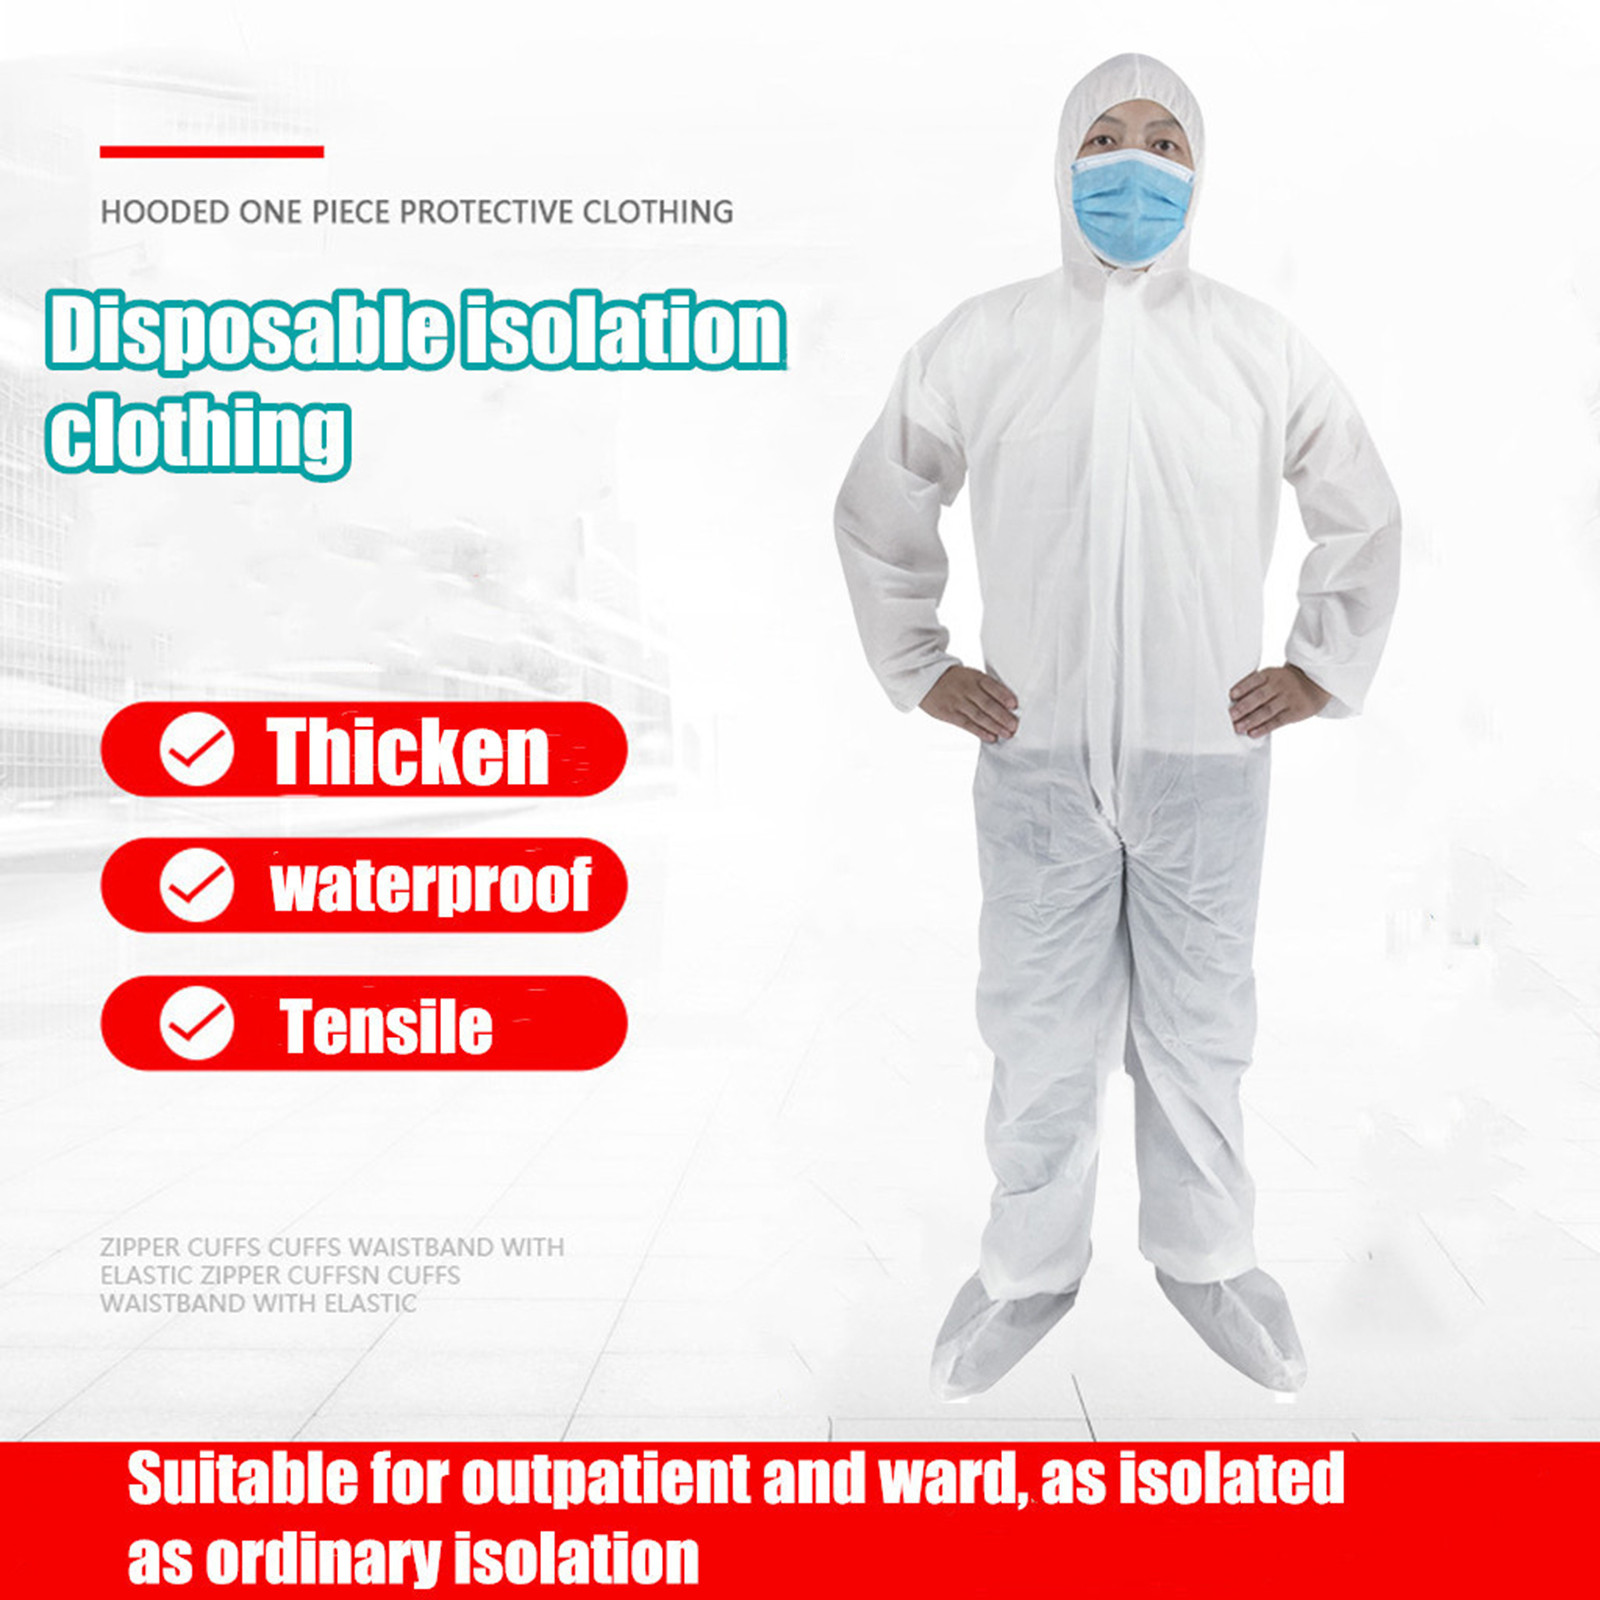 Men White Coverall Chemical Hazmat Isolation Suit Disposable Protective Clothing New Hooded Raincoats Disposable